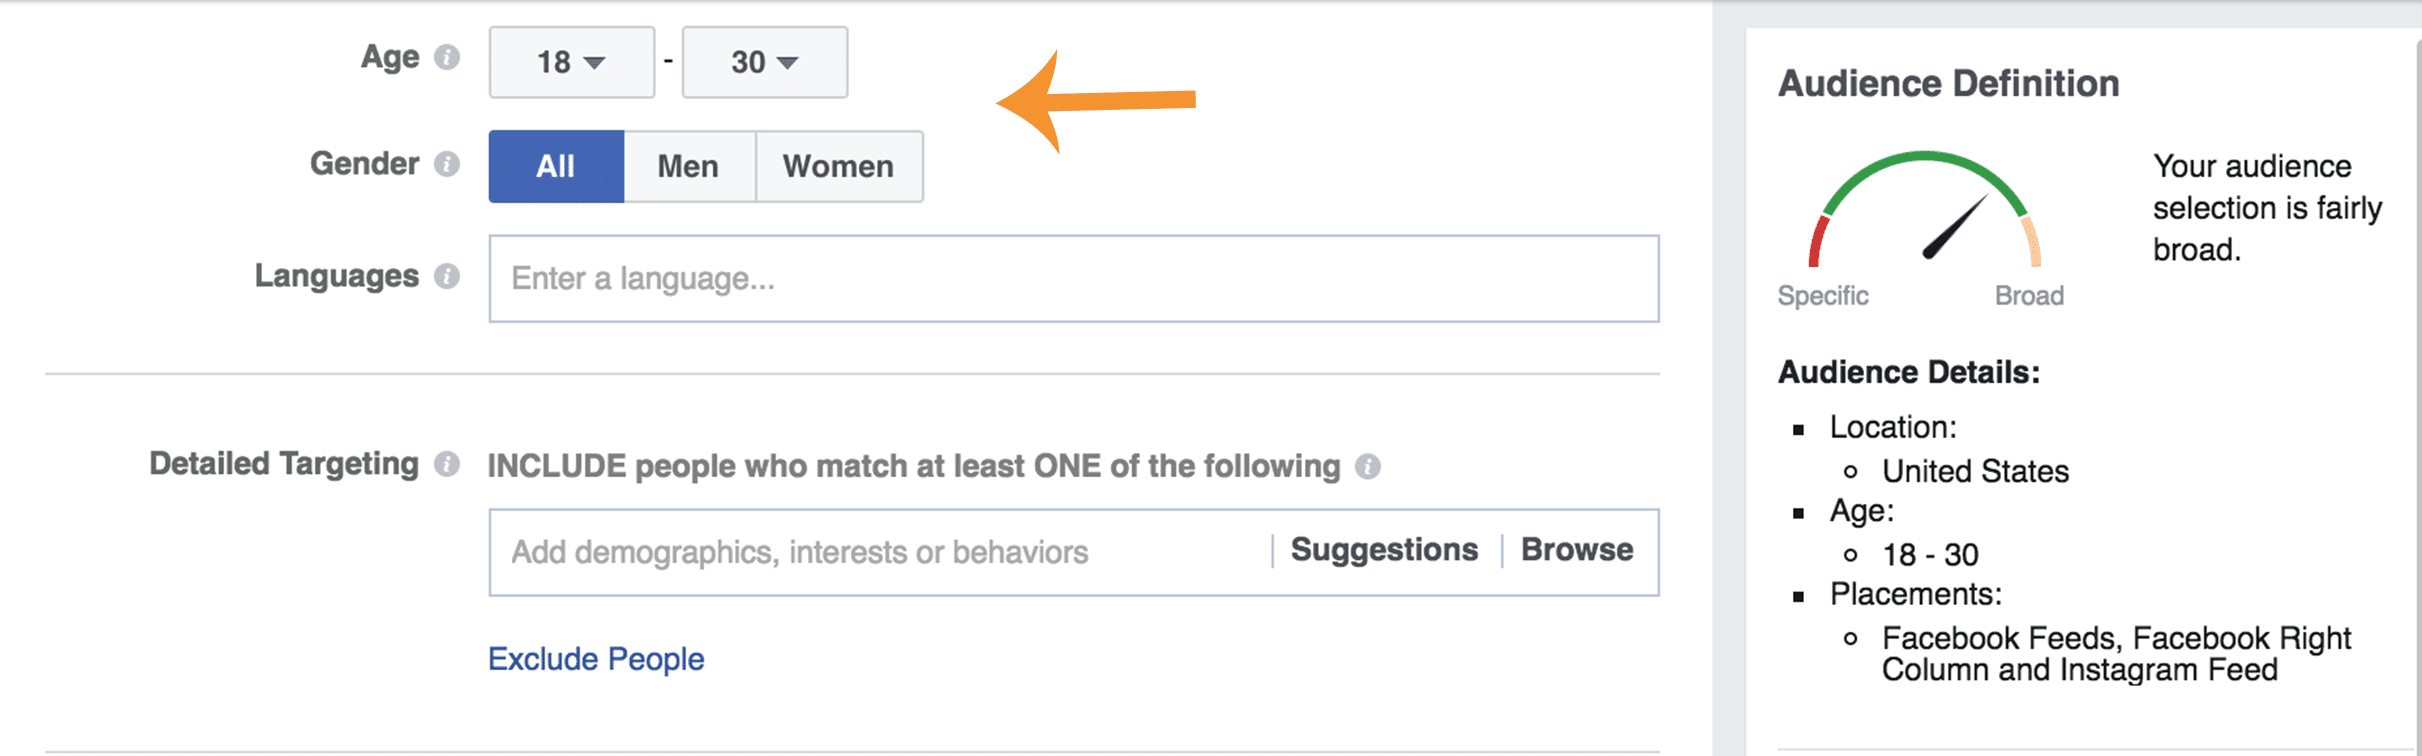 Choosing the age and gender for a Facebook ad